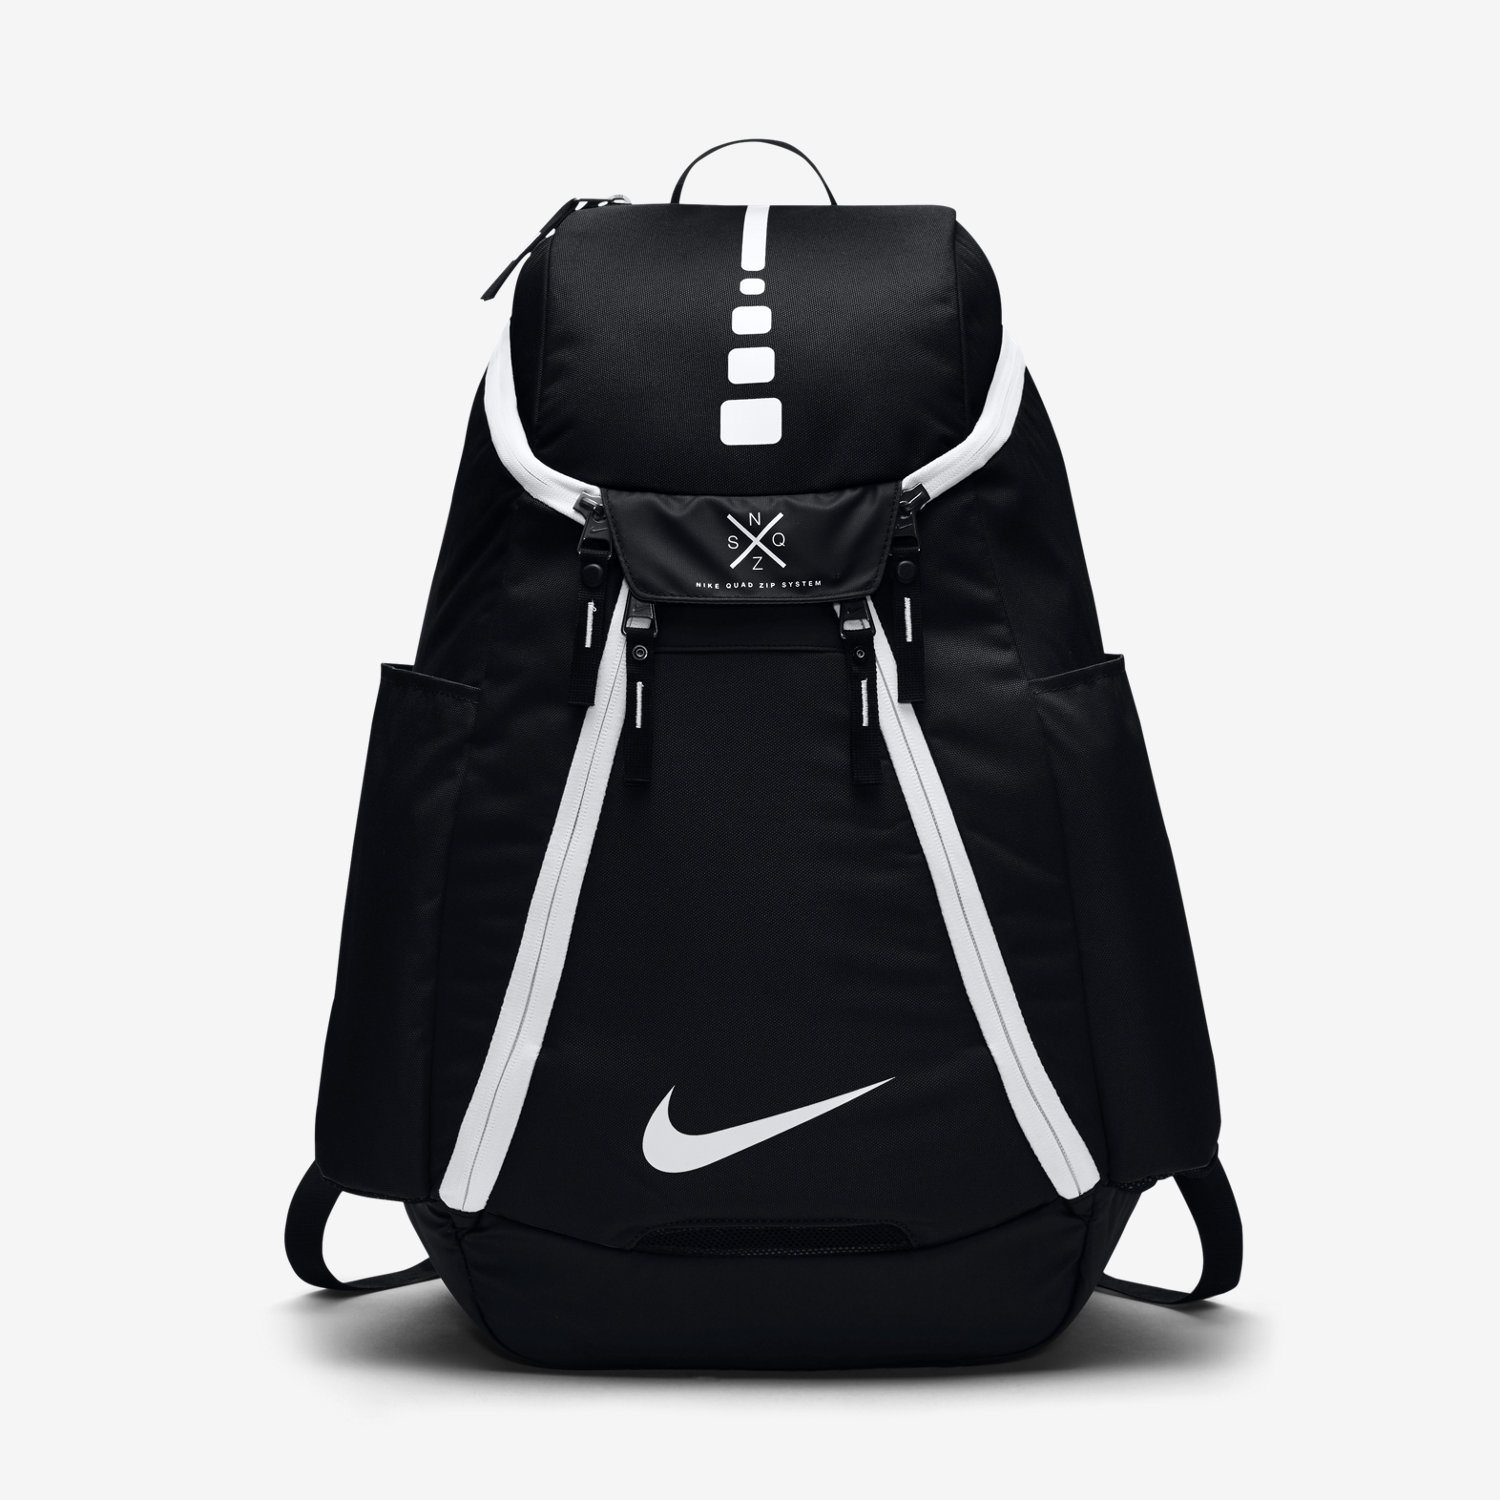 Buy white nike bookbag   OFF58% Discounted 91899e40ae